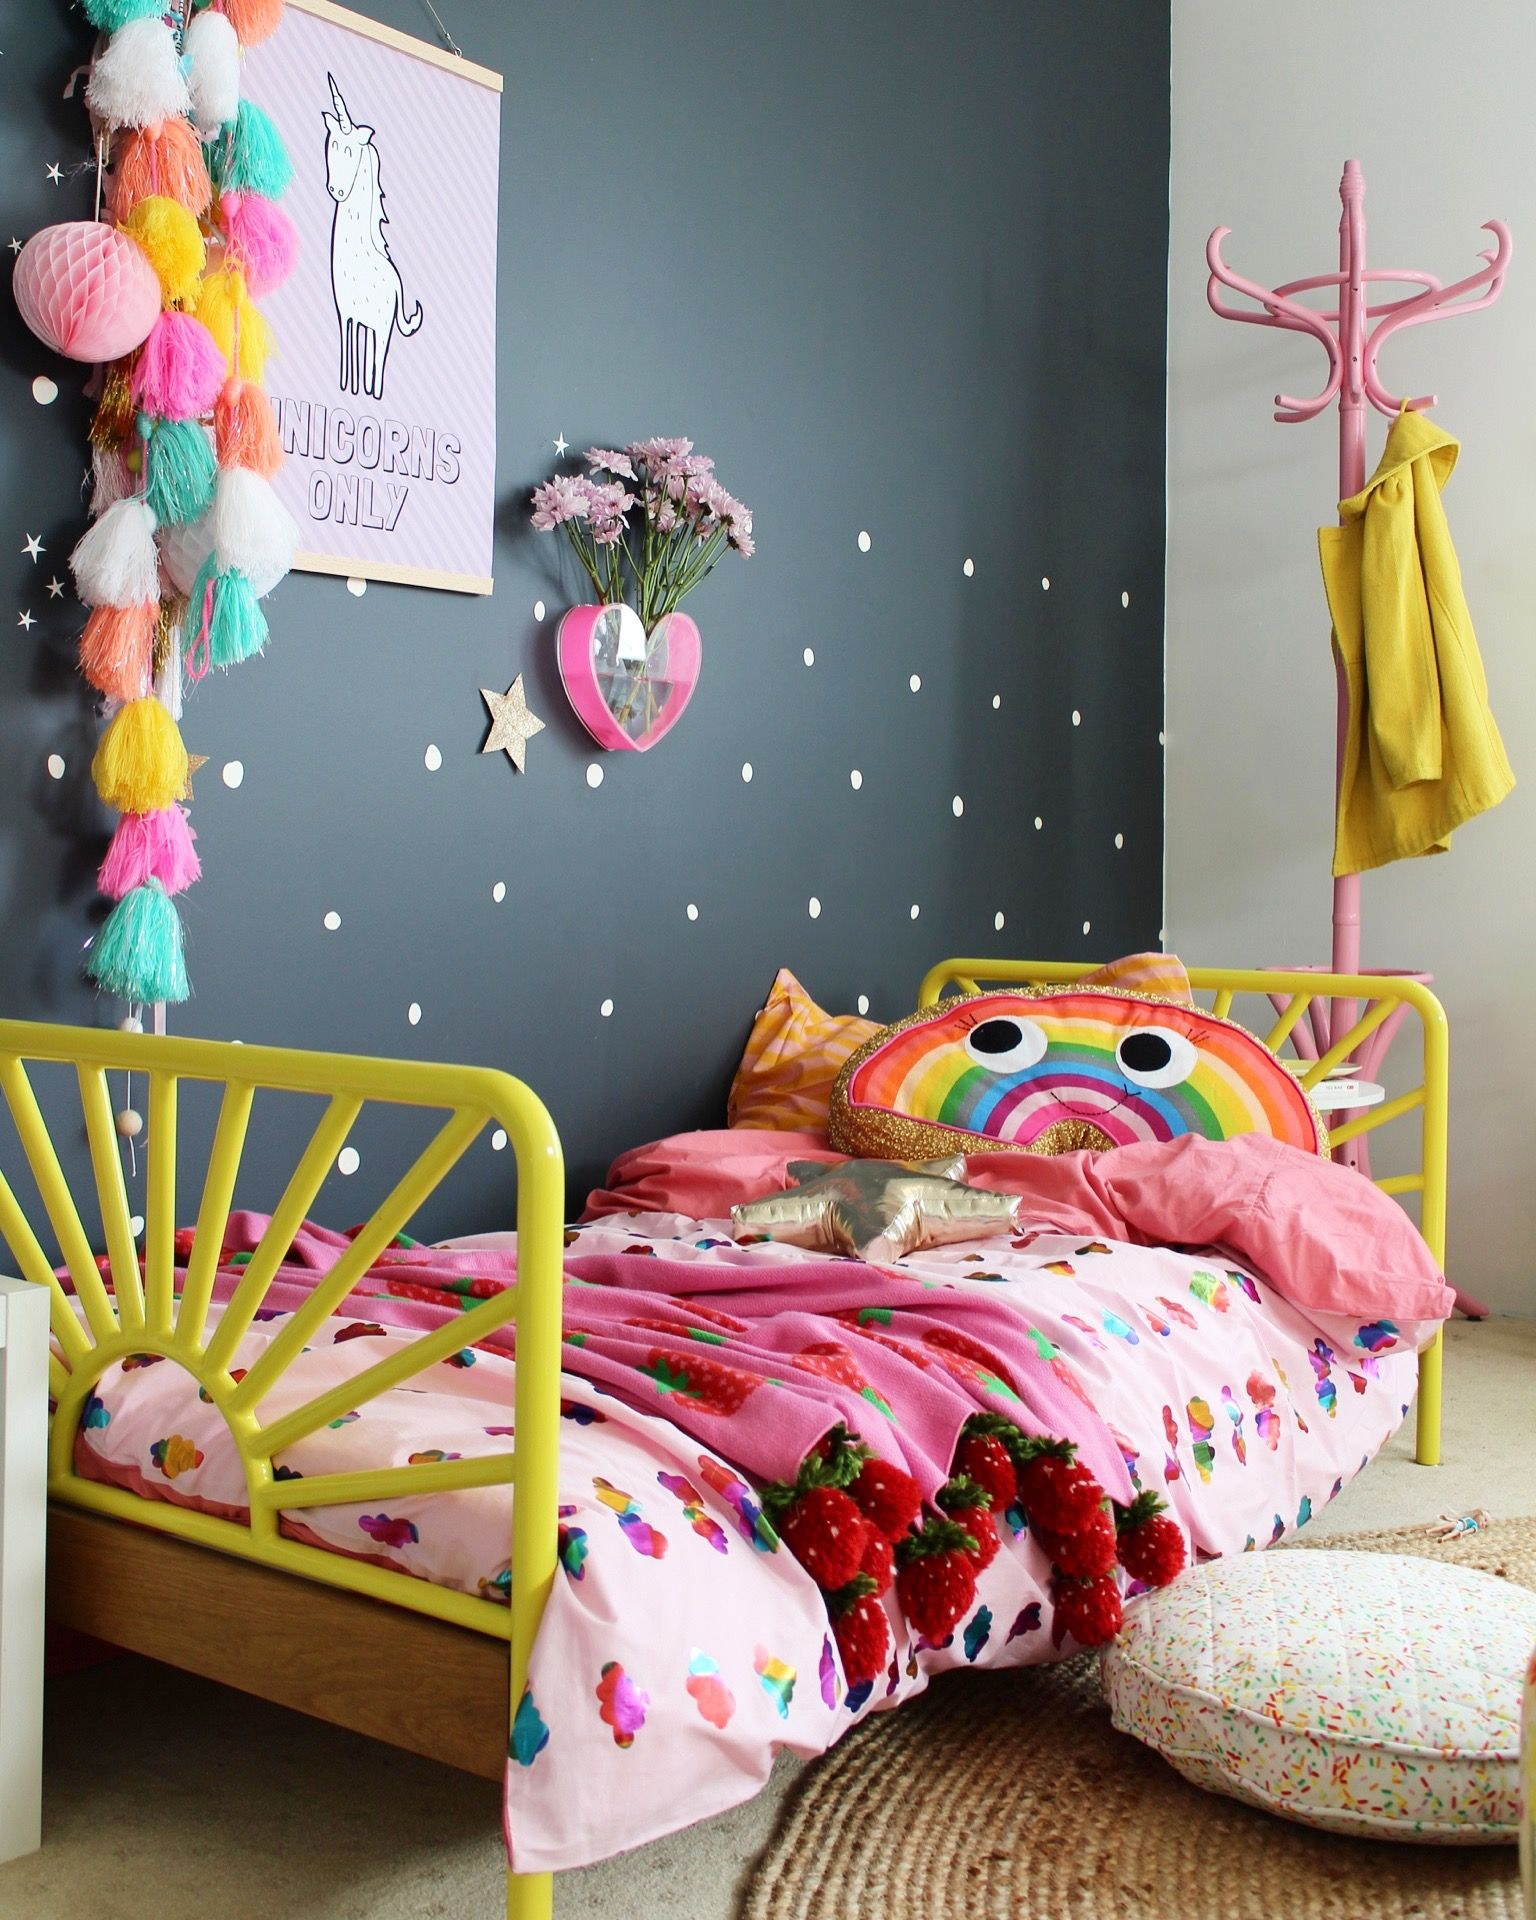 Cute Kids Room Decorating Ideas: 25+ Amazing Girls Room Decor Ideas For Teenagers